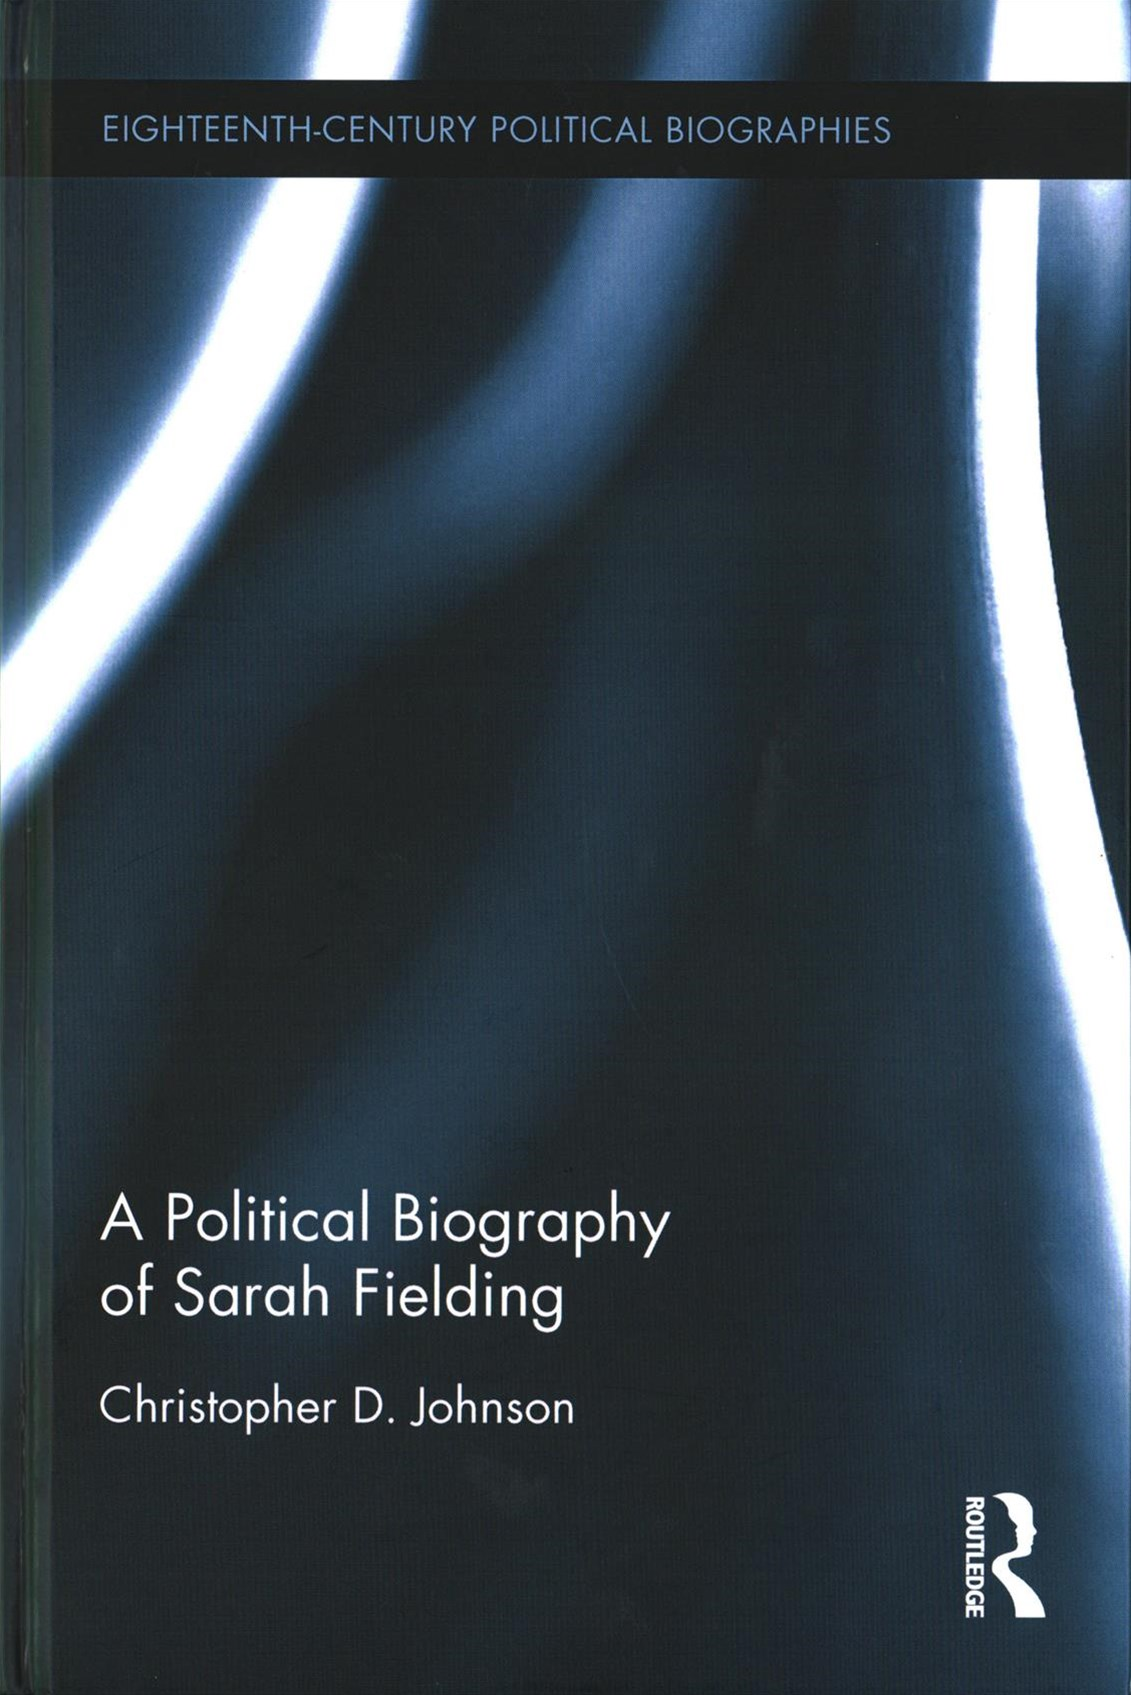 Political Biography of Sarah Fielding